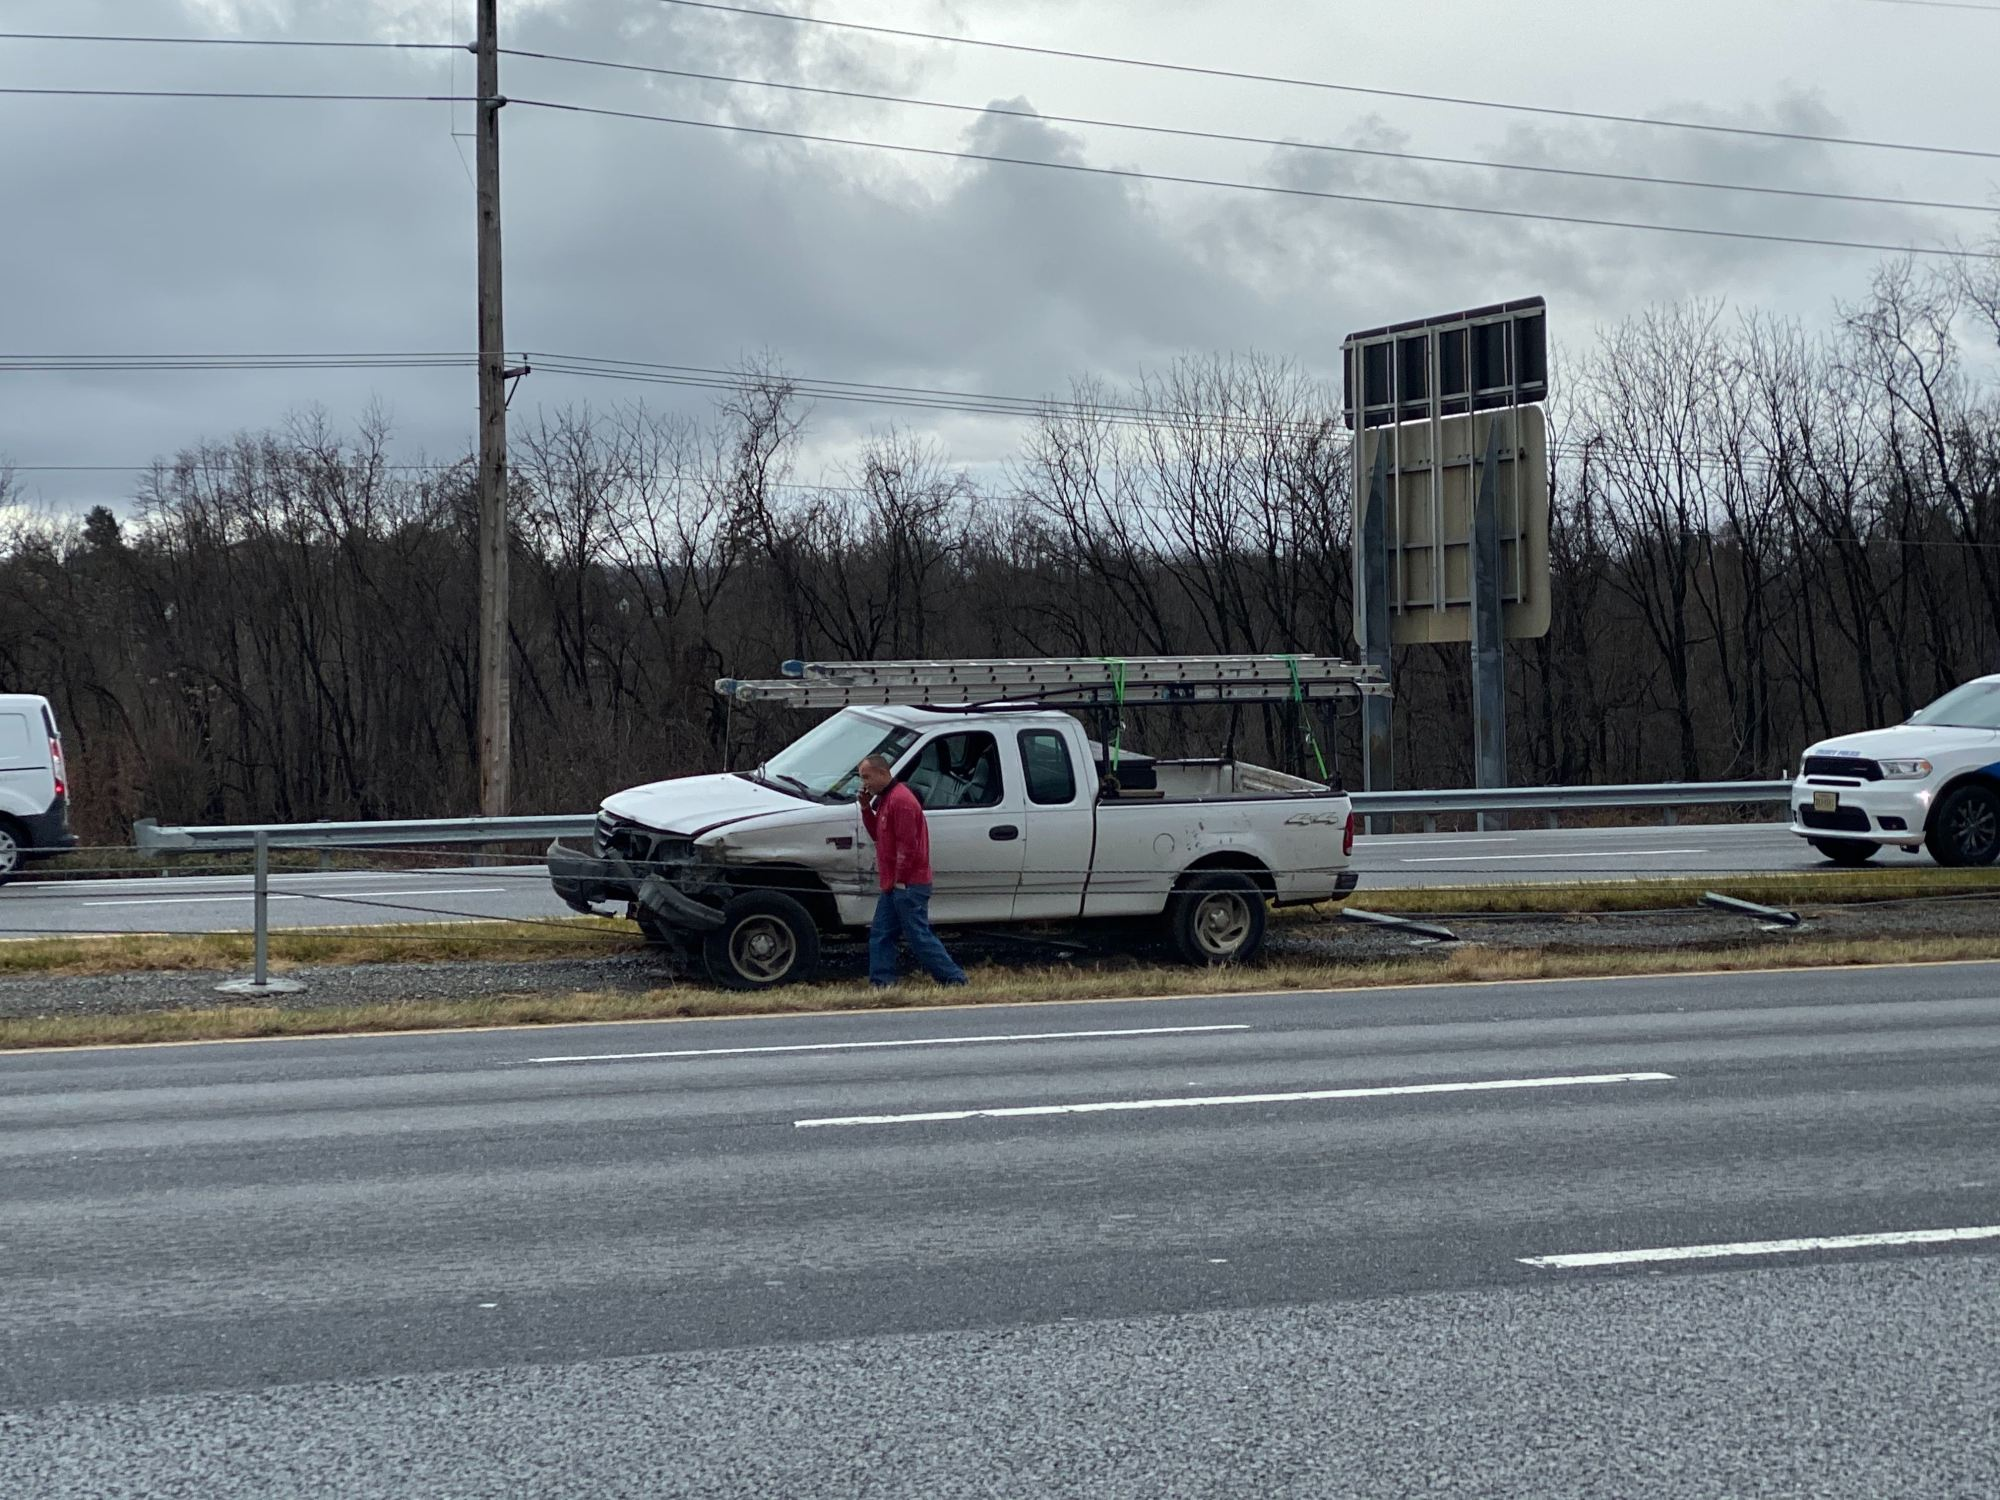 This truck was northbound on Interstate 581 near Valley View in Roanoke when it entered the median and hit cable barriers installed to prevent head-on collisions. (Photo: Ryan Saylor/WFXR News)